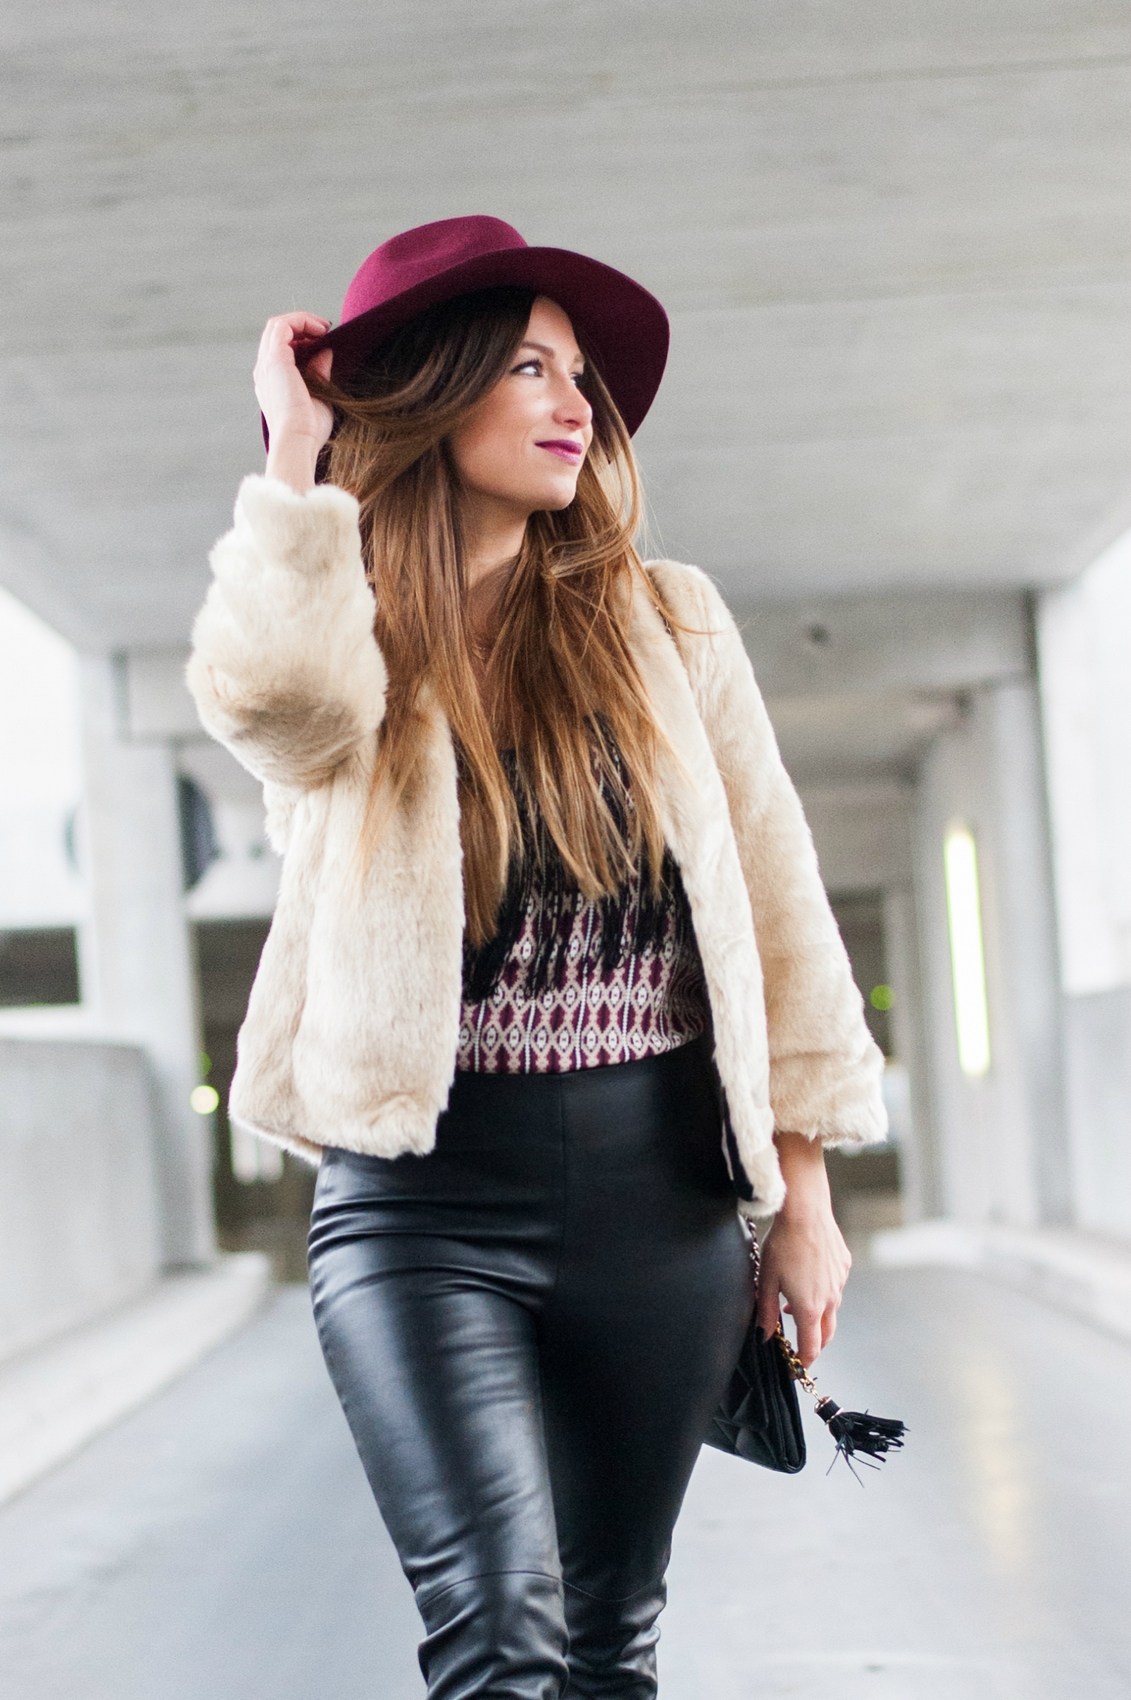 boho rock look fashion blog burgundy touch faux fur cream coat biker leather pant fringed ethnic top